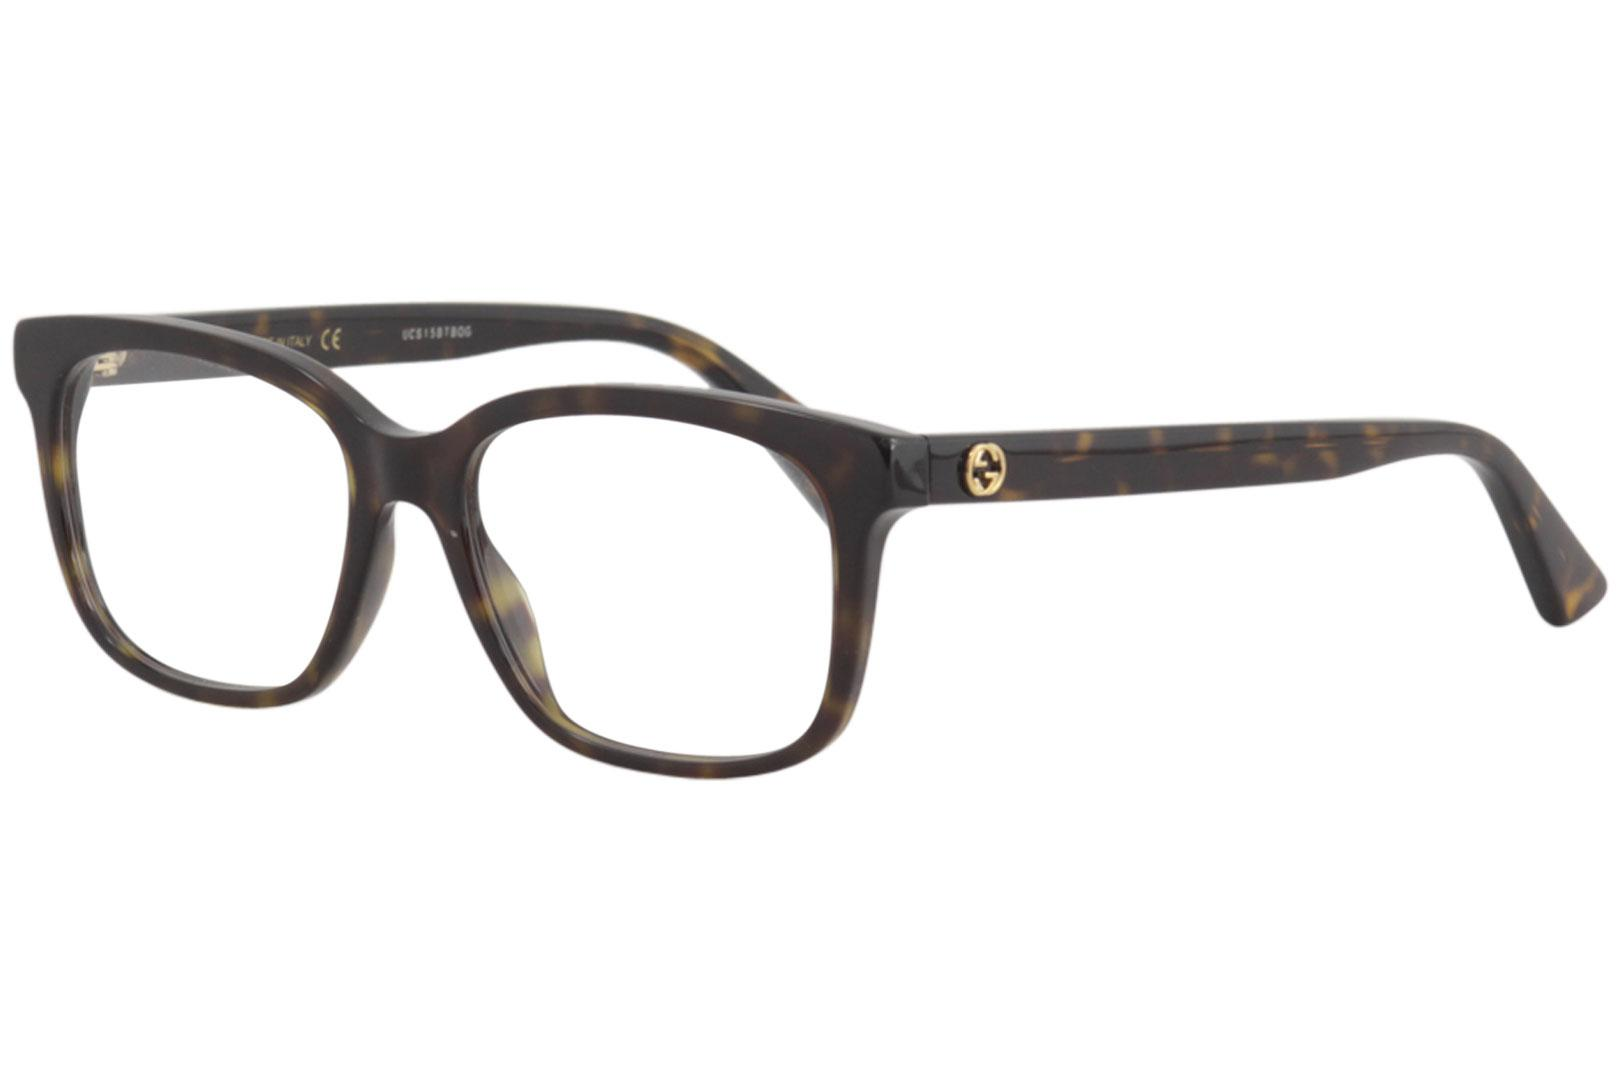 336f41b1d0 Gucci Women s Urban Eyeglasses GG0330O GG 0330O Full Rim Optical Frame